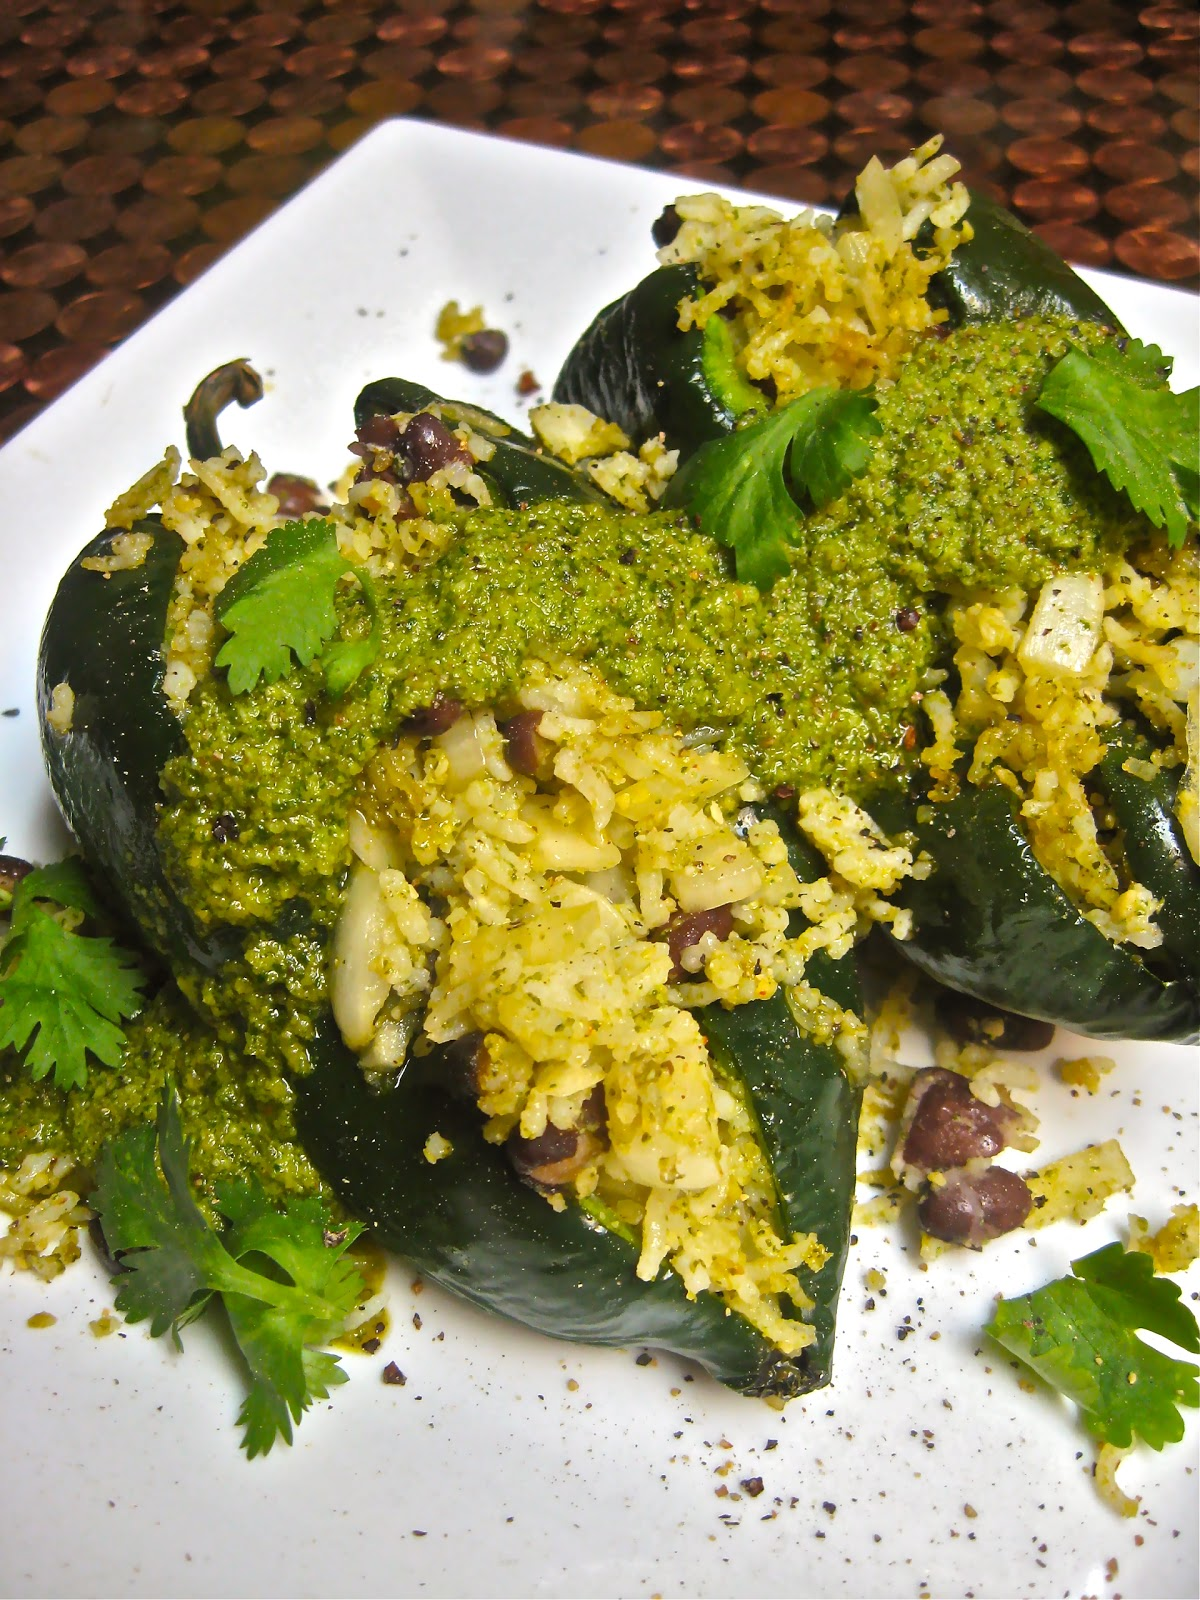 Justthefoode blog august 2012 spicy cilantro pepita pesto stuffed peppers forumfinder Choice Image